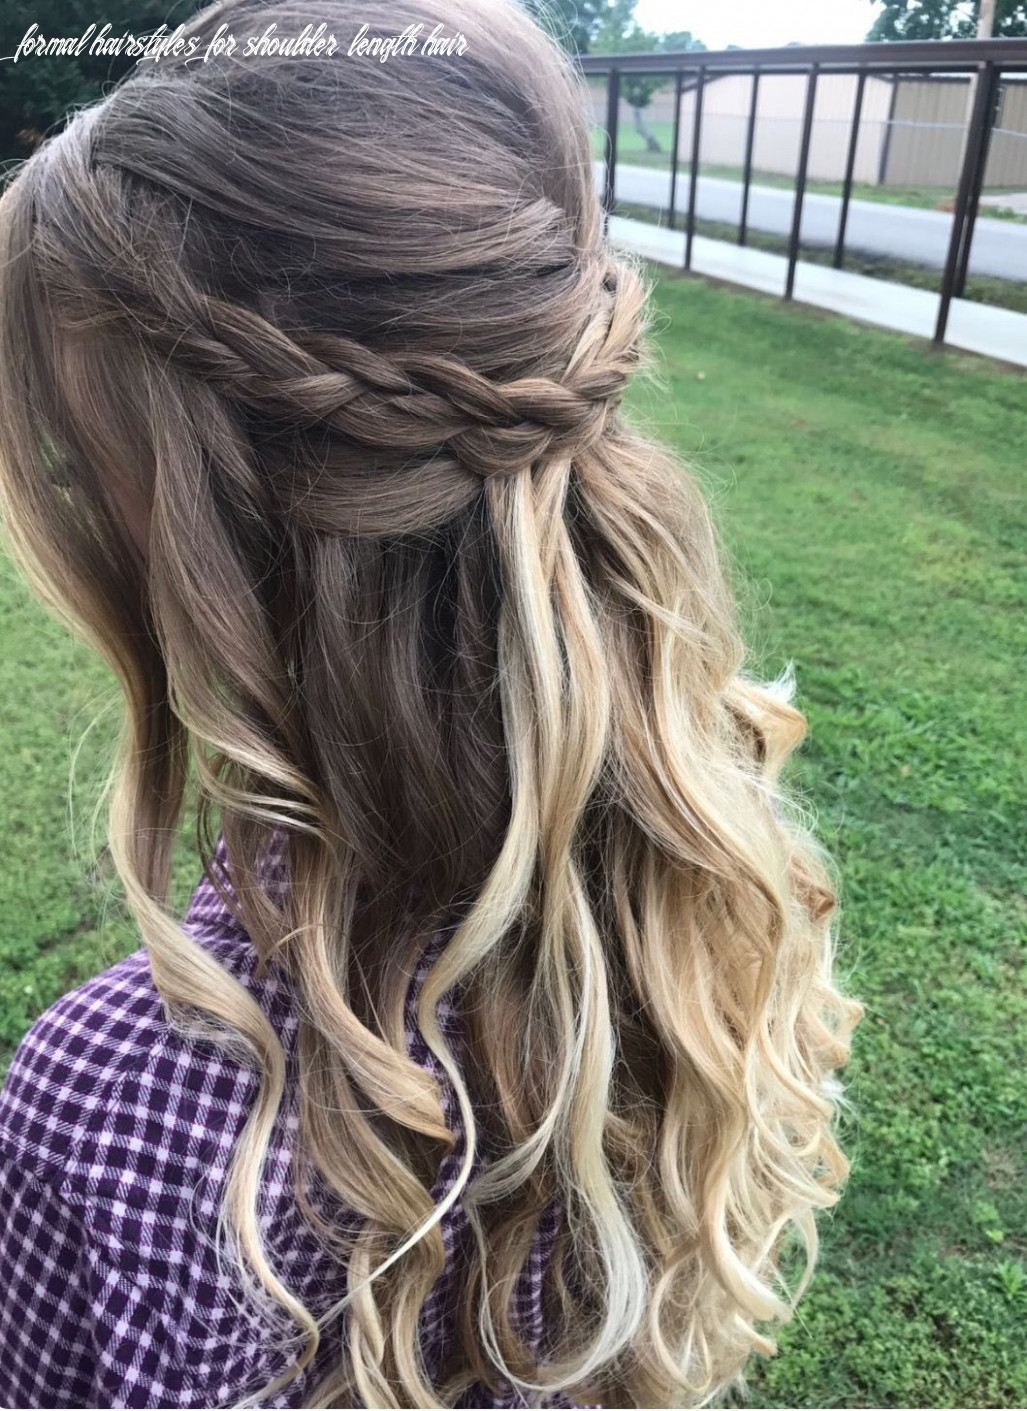 To stand out from the crowd | wedding hair down, braided